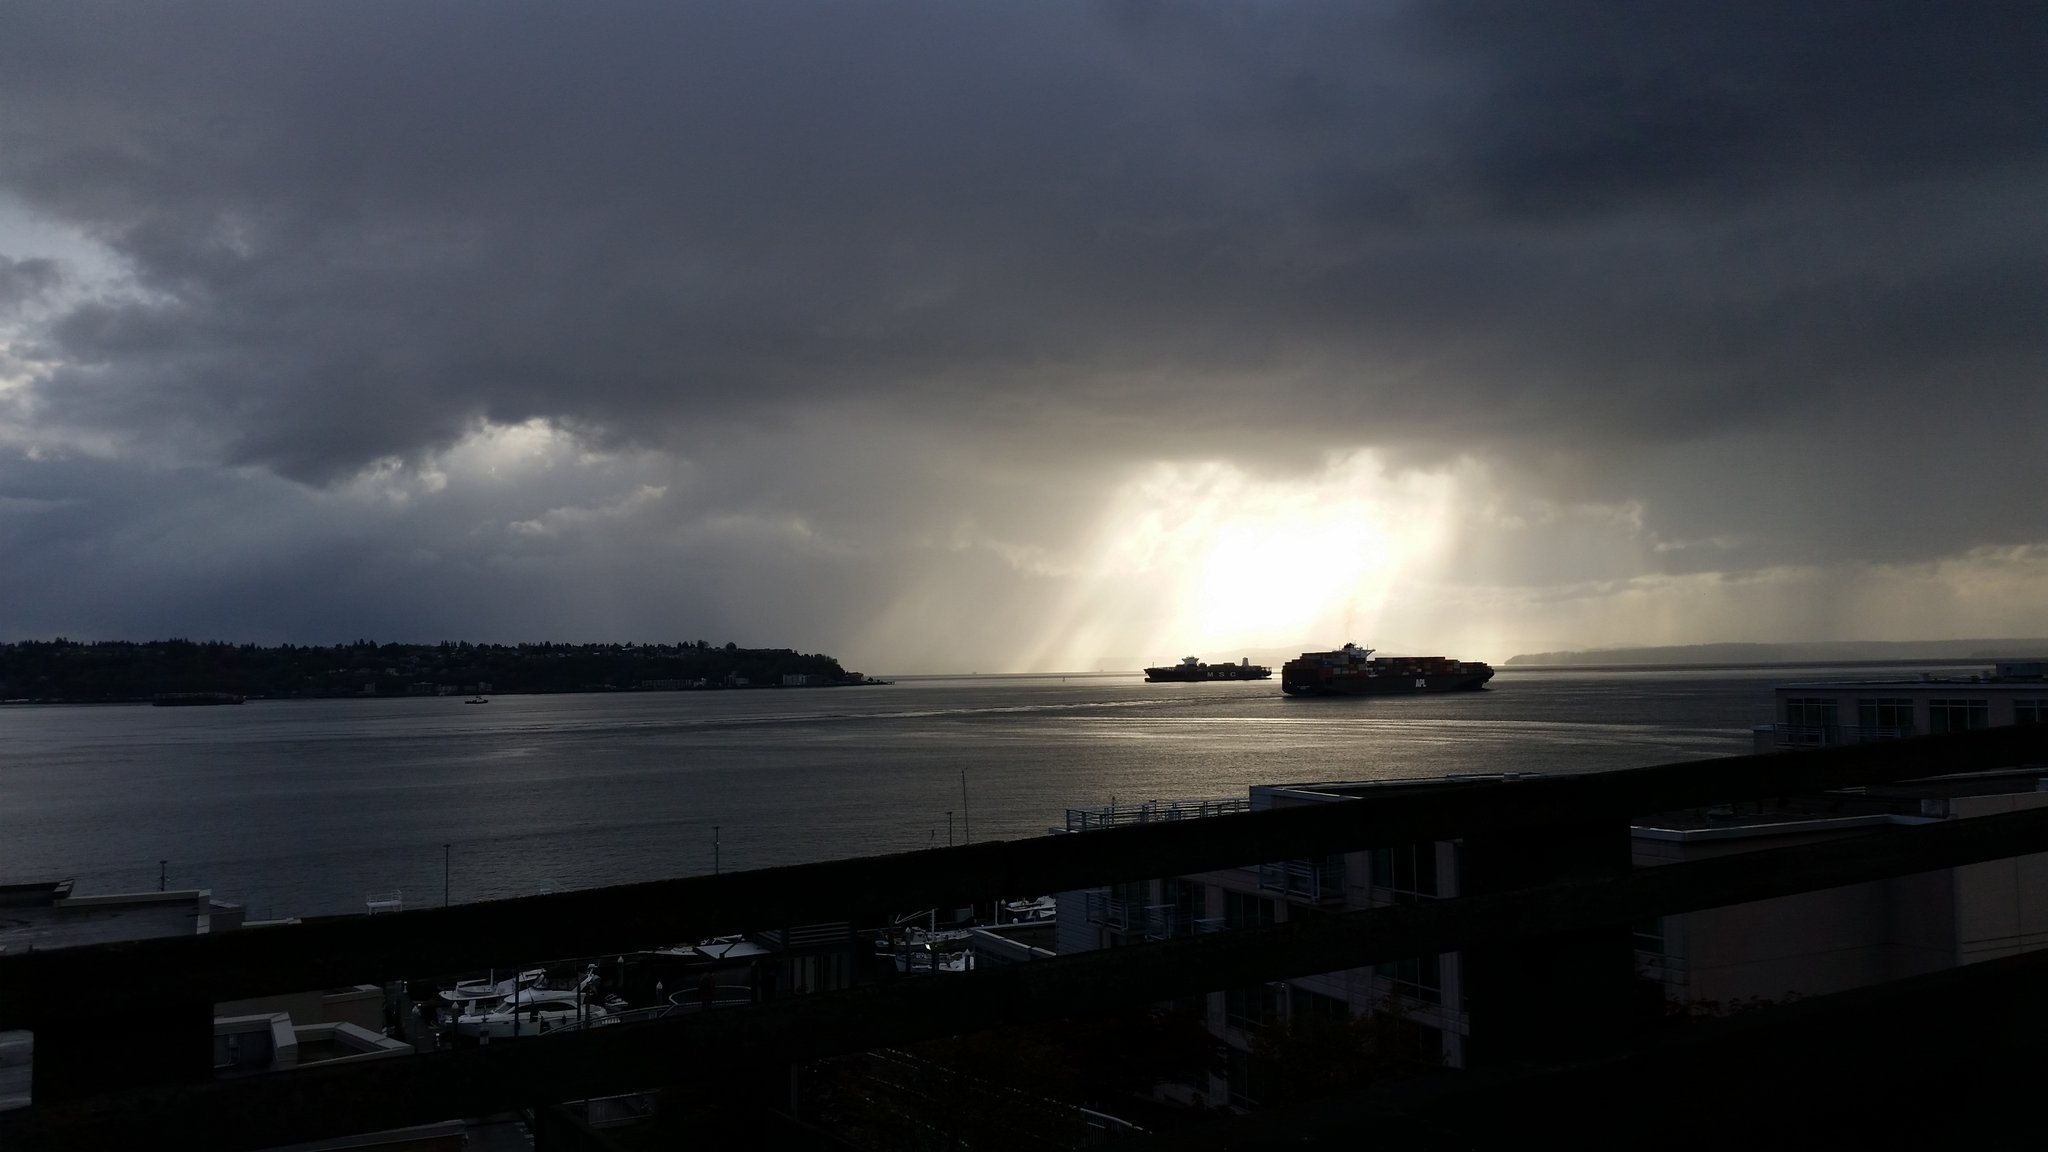 Storm clouds are seen over Puget Sound, Tuesday, April 18, 2017. (Photo: David Nyro)